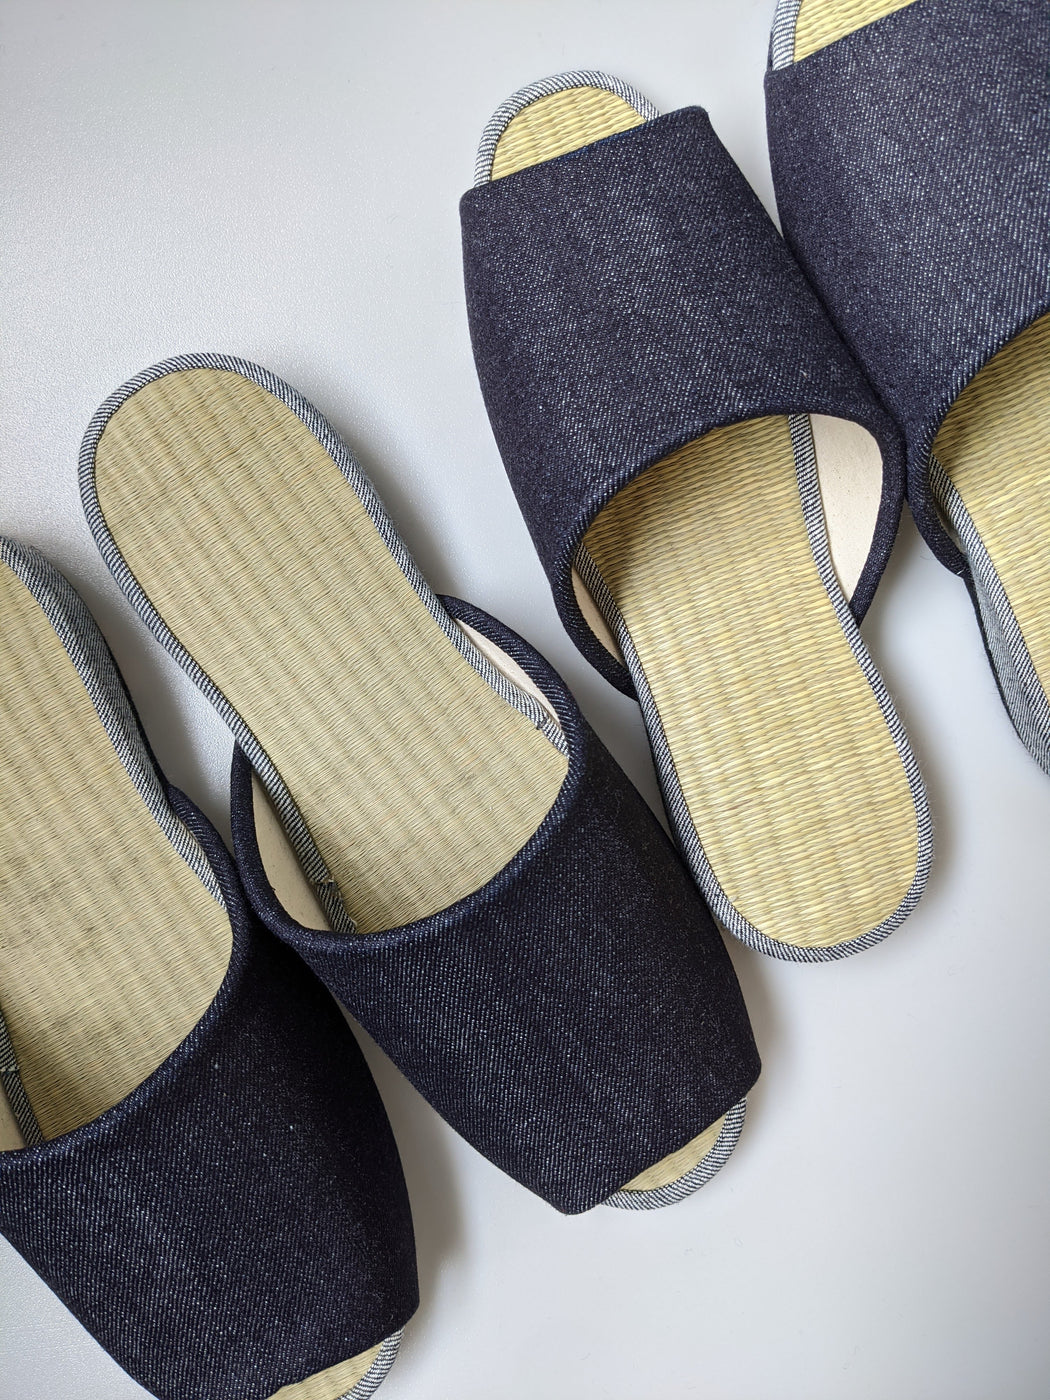 Open Toe TATAMI Slippers Type#2  [Black Wool Felt Sole] / Shimple [Denim Hiroshima]